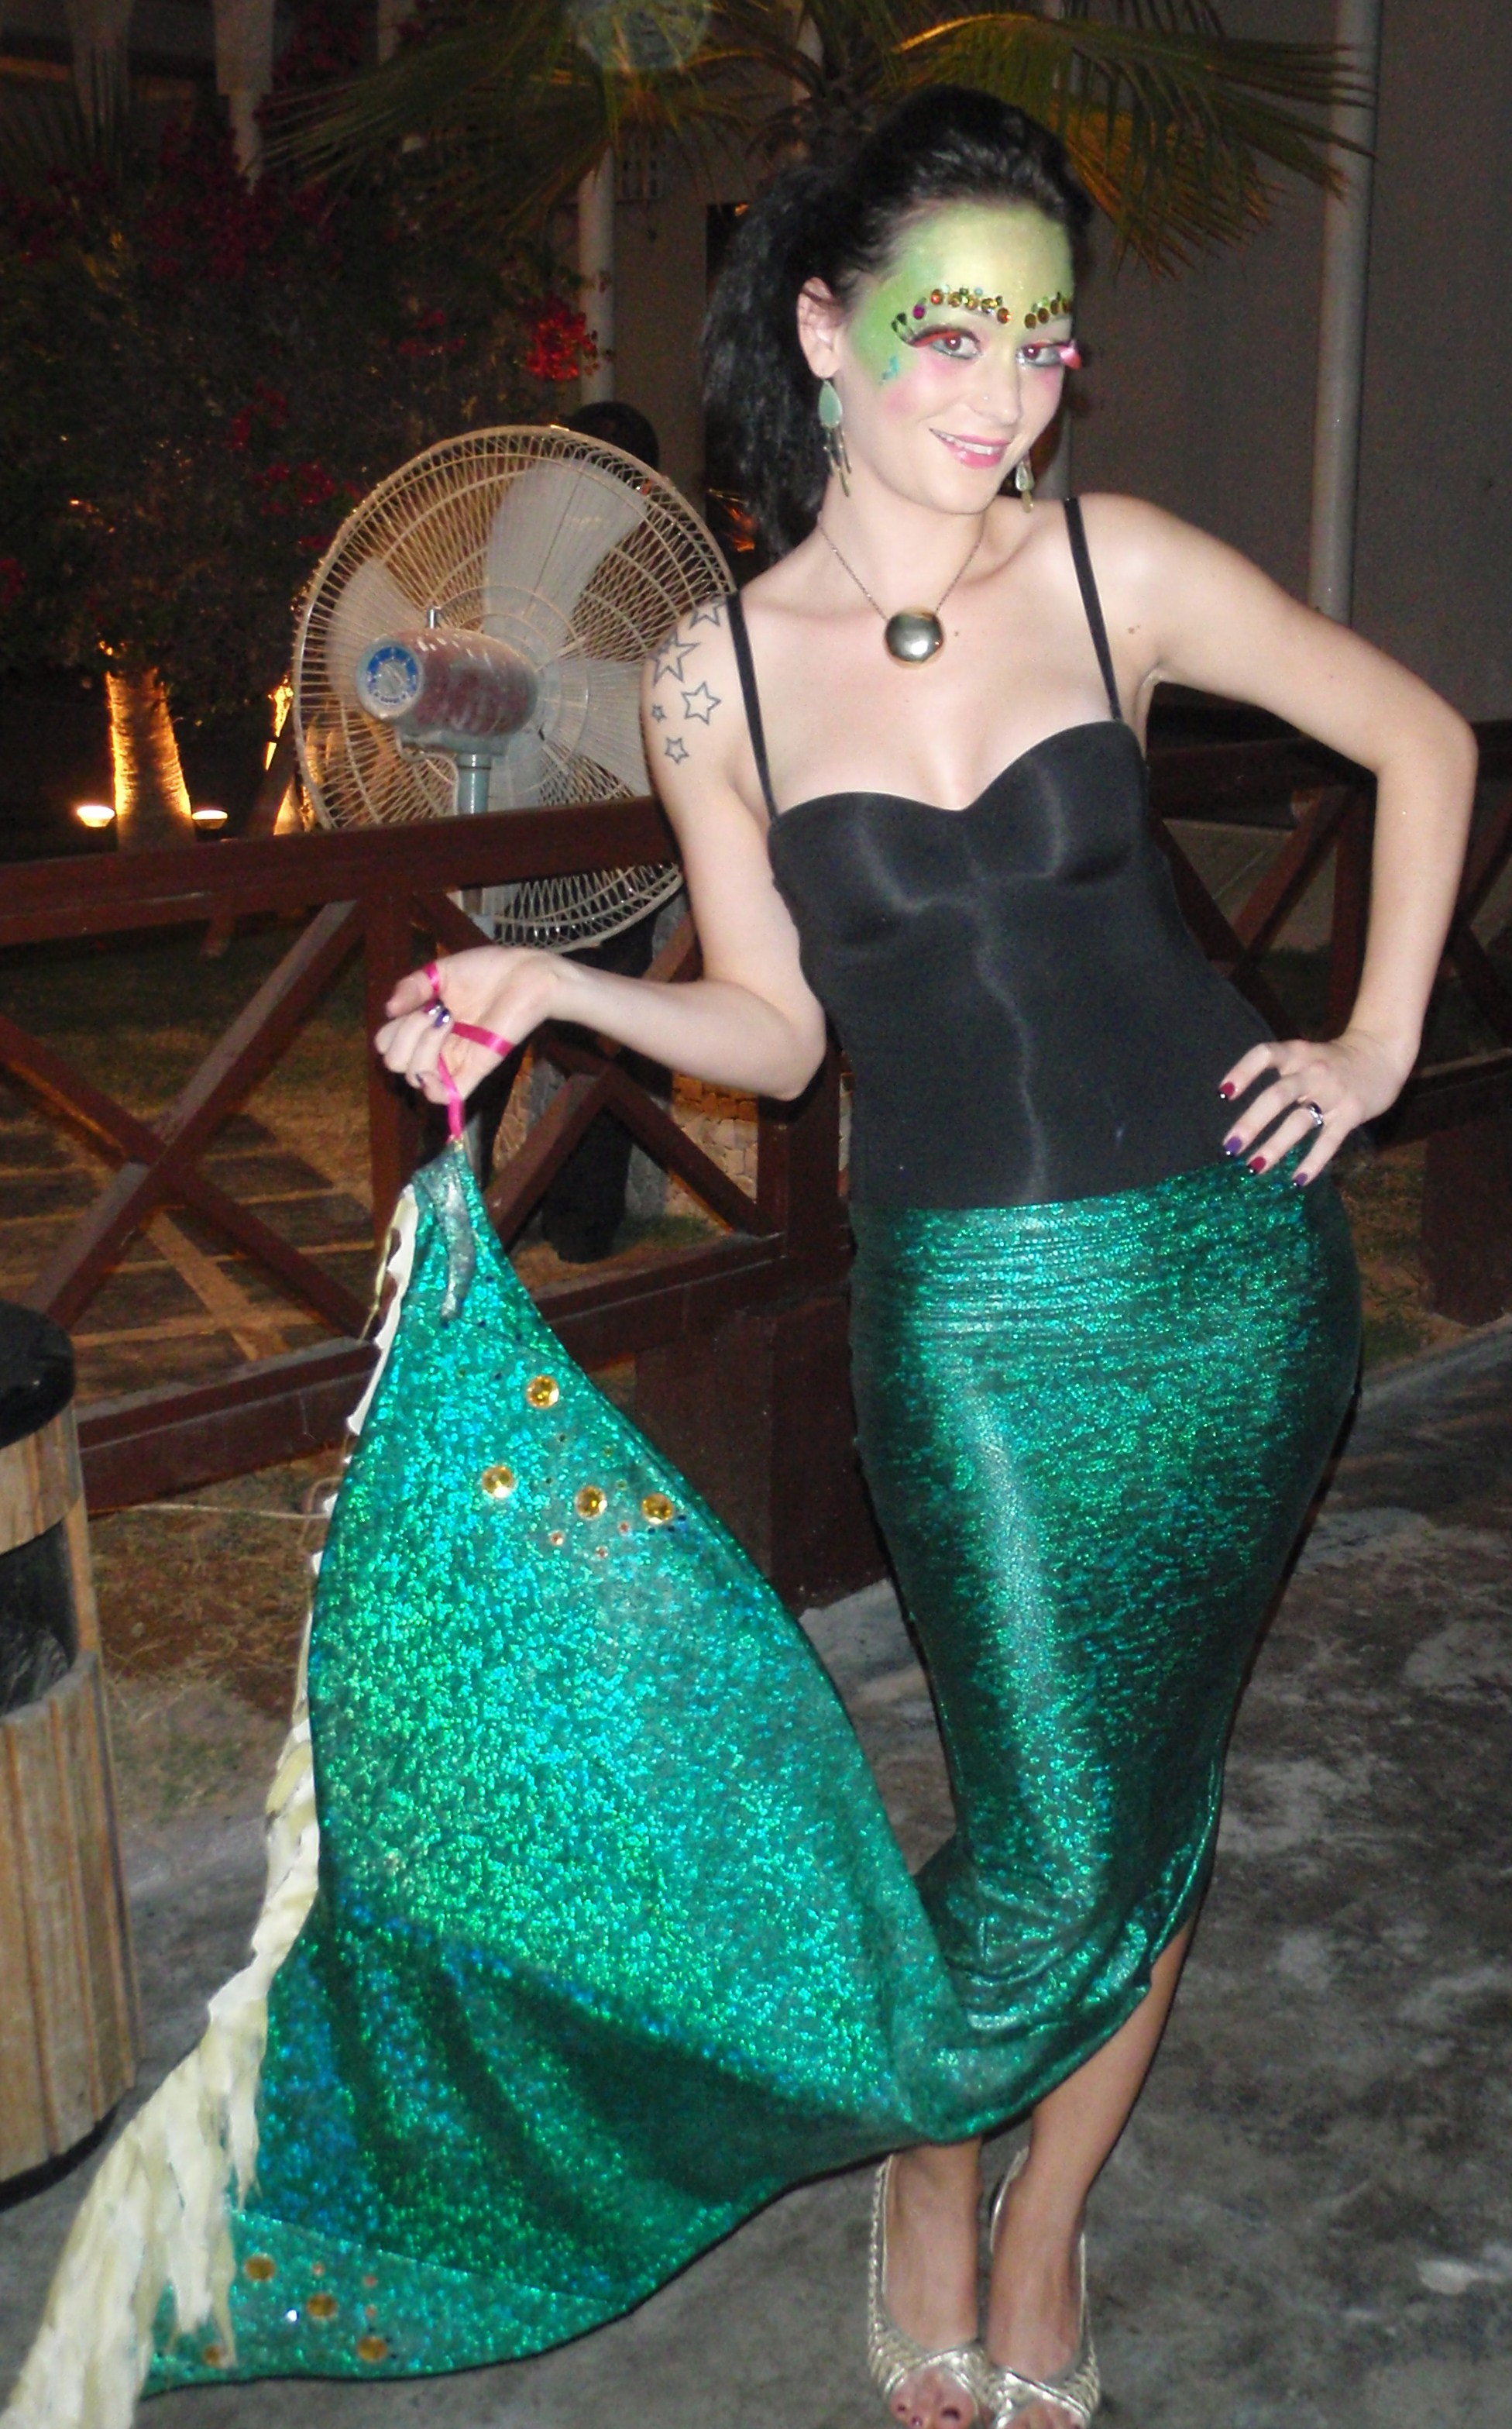 Mermaid Costume Sewing Projects Burdastyle Com